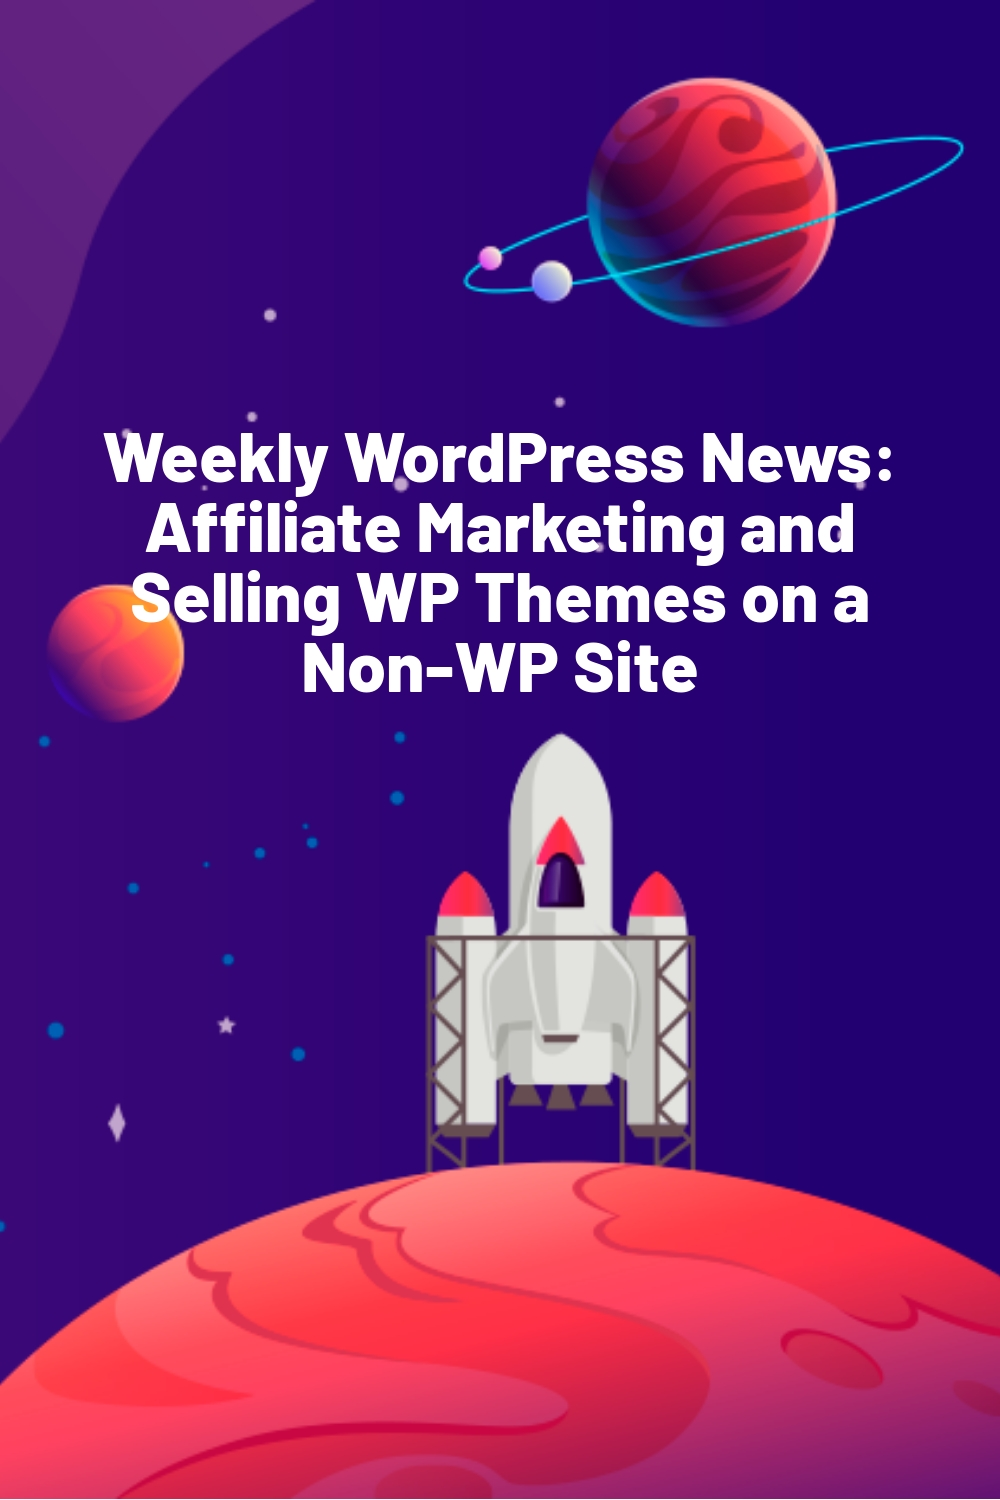 Weekly WordPress News: Affiliate Marketing and Selling WP Themes on a Non-WP Site